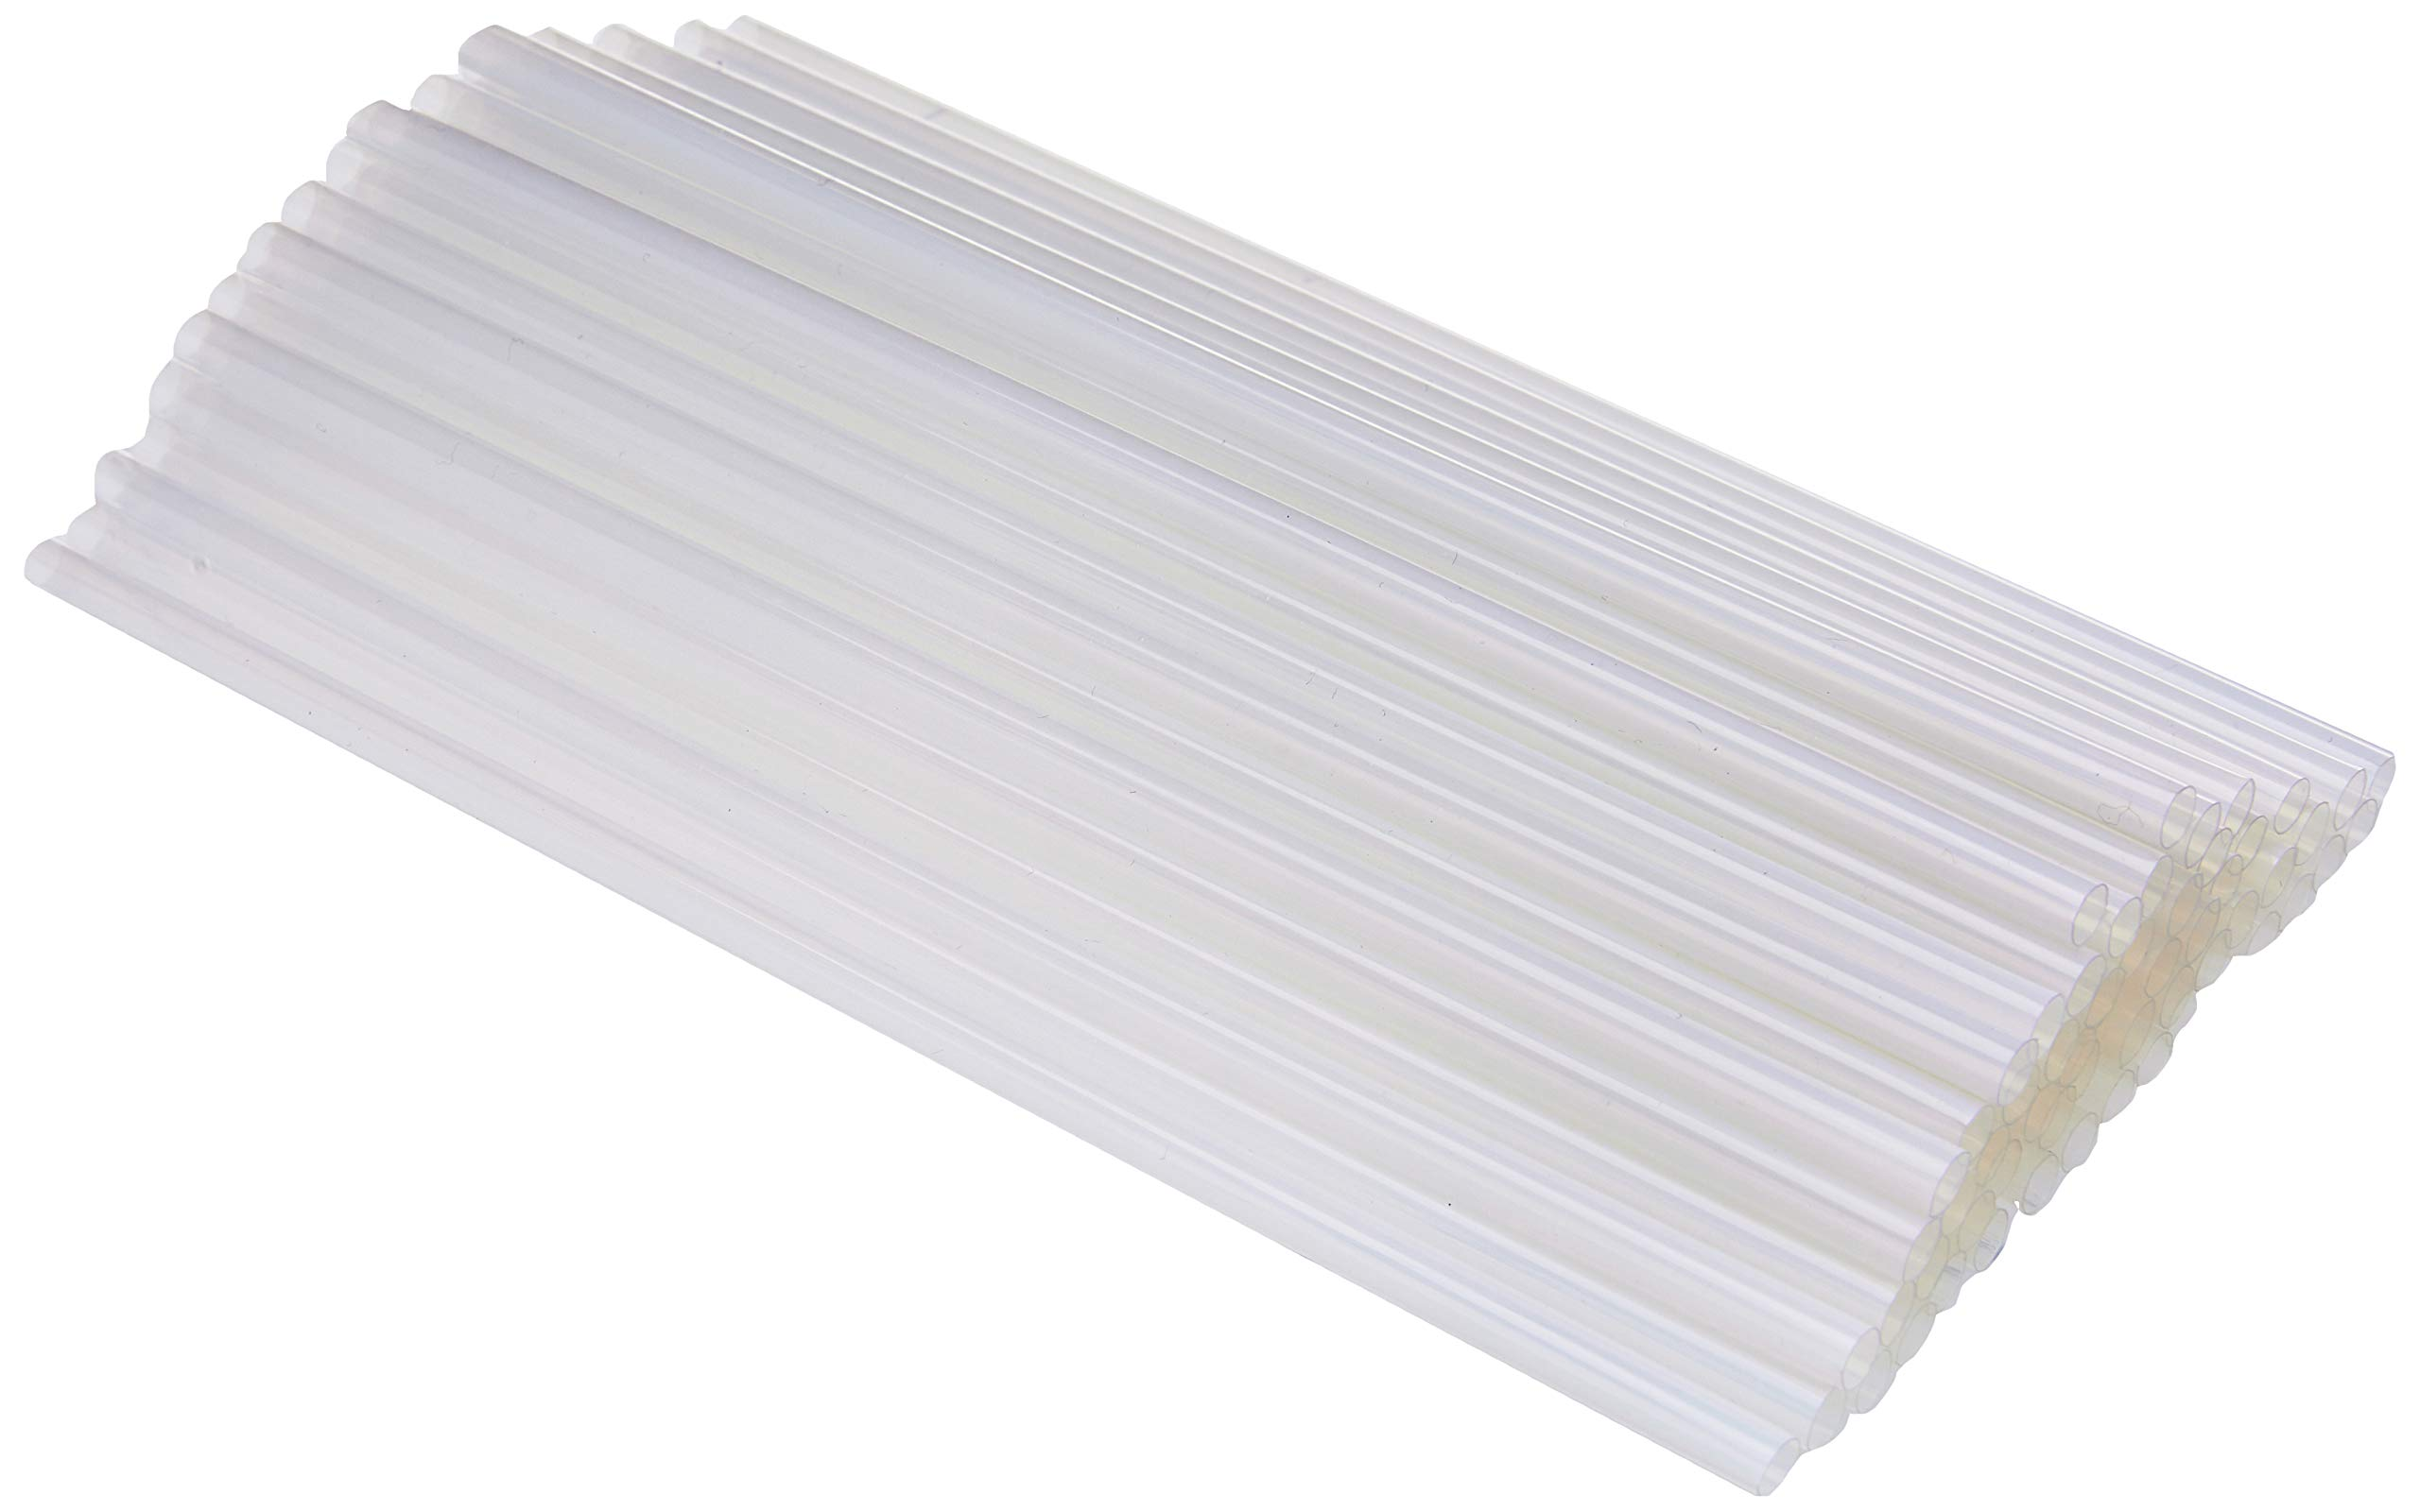 AmazonBasics Compostable PLA Straw, Translucent, 1,000-Count by AmazonBasics